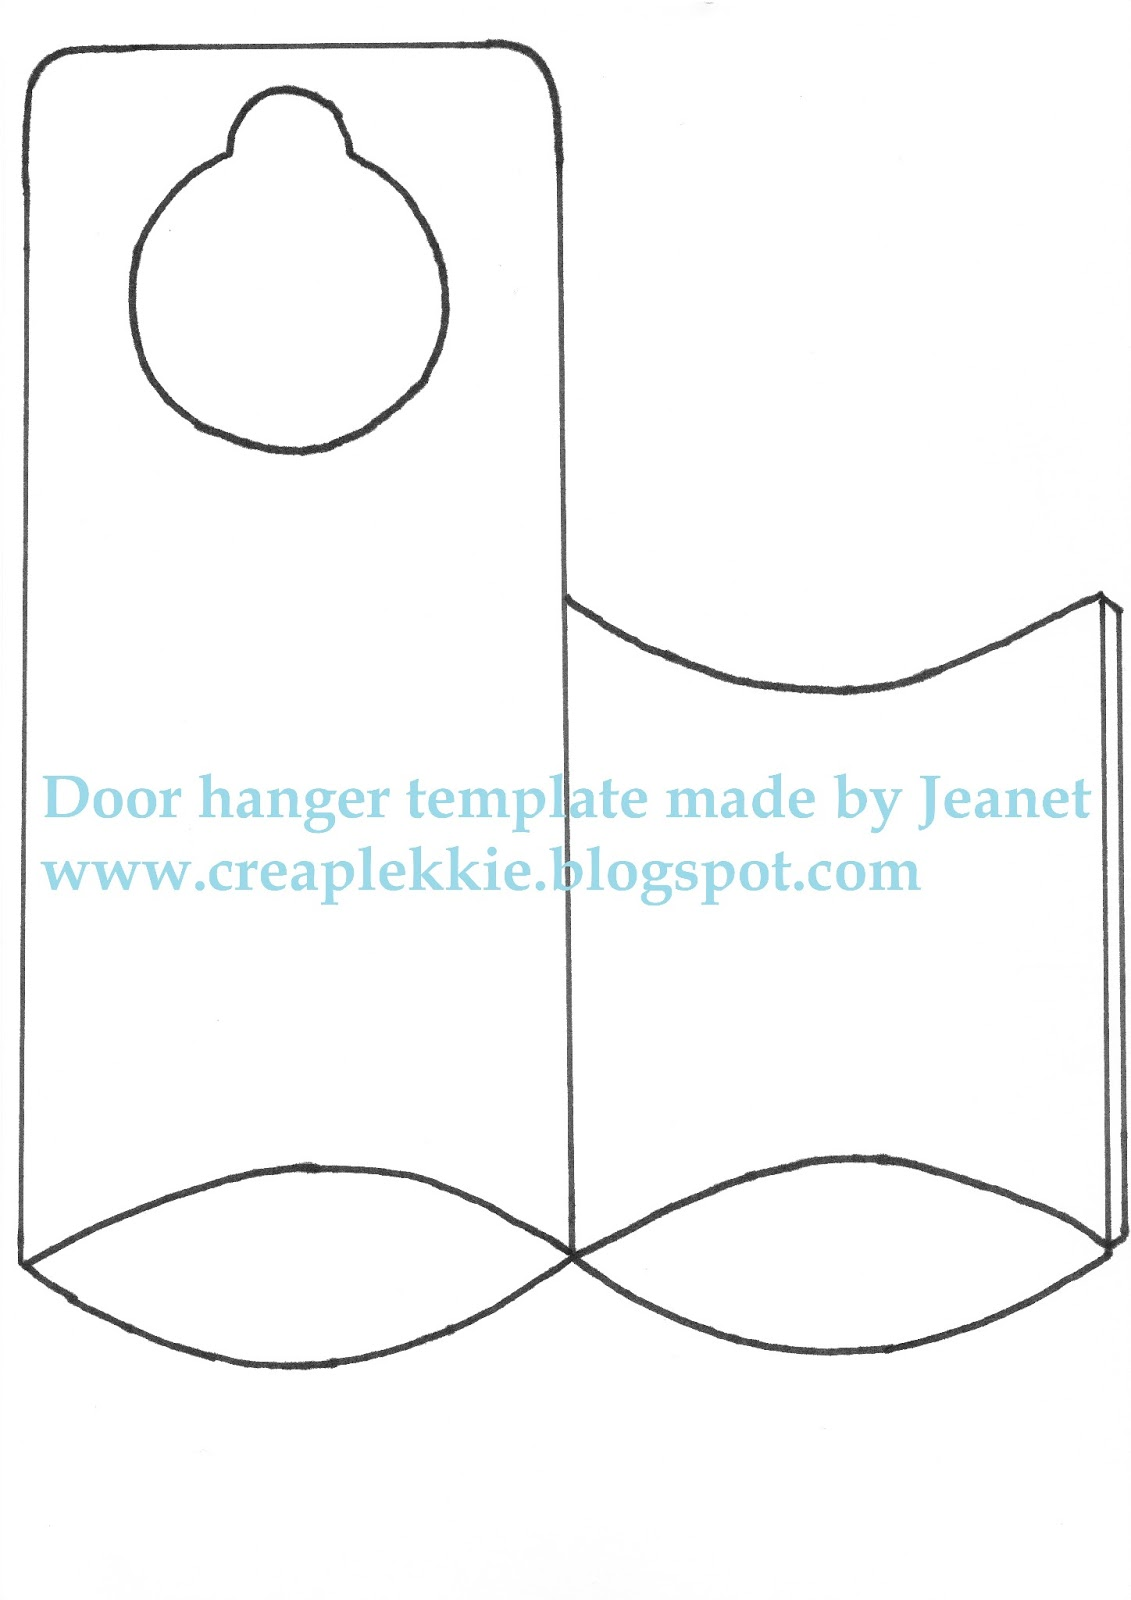 door hangers templates - Ins.ssrenterprises.co